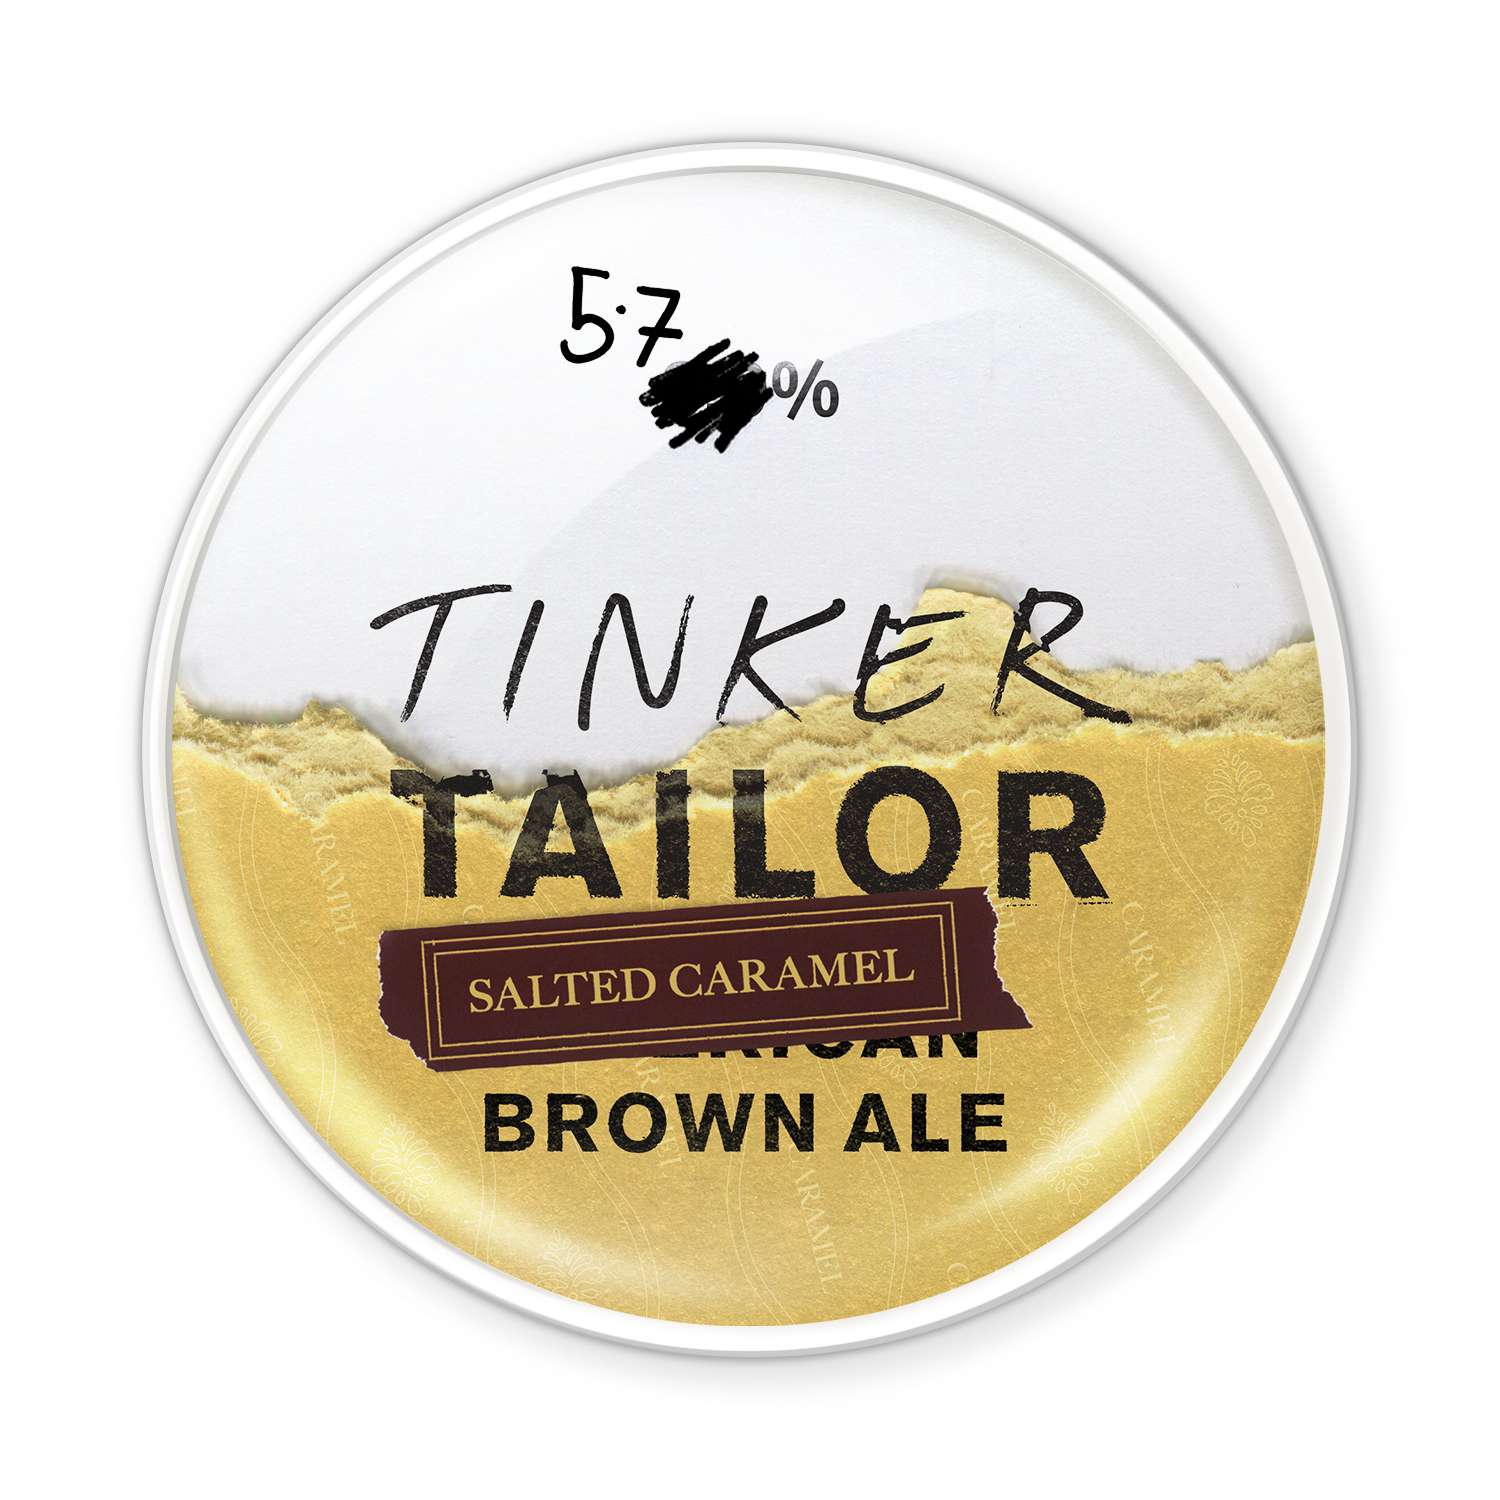 Salted CaramelAmerican Brown Ale - Tinker's travelled the earth to bring you this tasty brew. Our American Brown Ale has been sprinkled with the finest Himalayan rock salt to discover an unrivalled balance of sweetness and saltiness. A comforting concoction. Try contrasting the subtle sweetness with an aged cheese for a taste-testing combination.5.7%